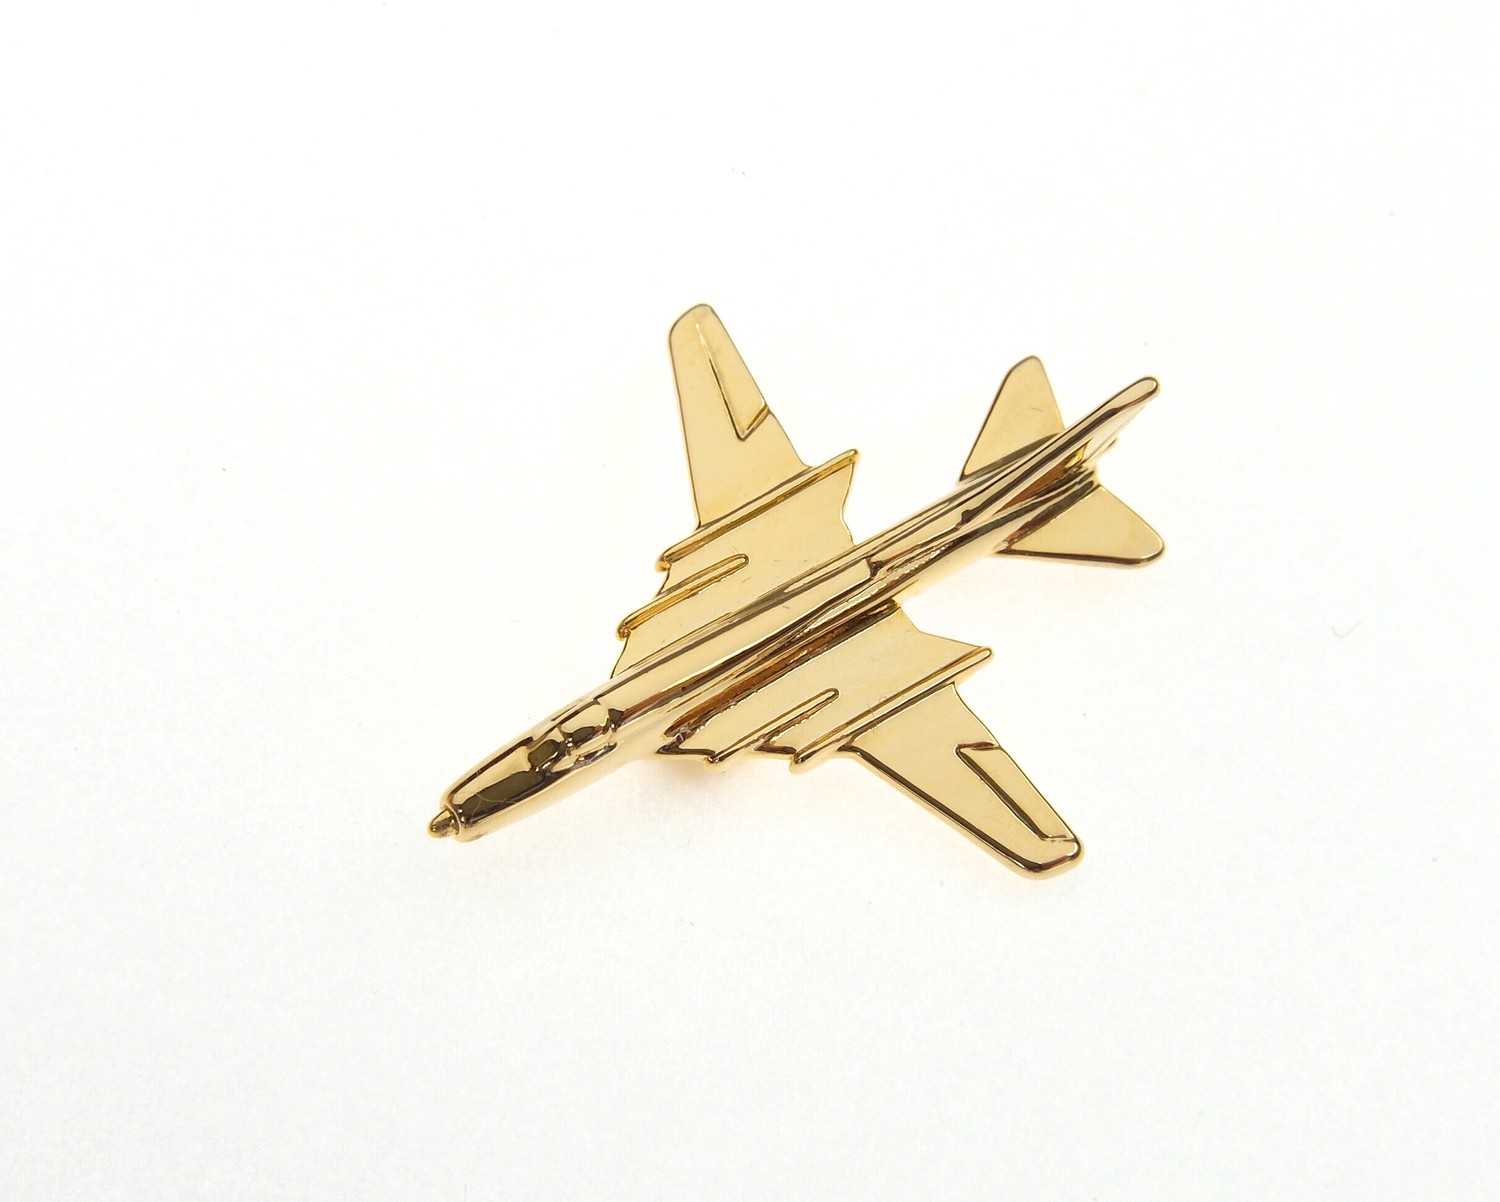 Sukhoi Su22 Fitter Gold Plated Tie / Lapel Pin